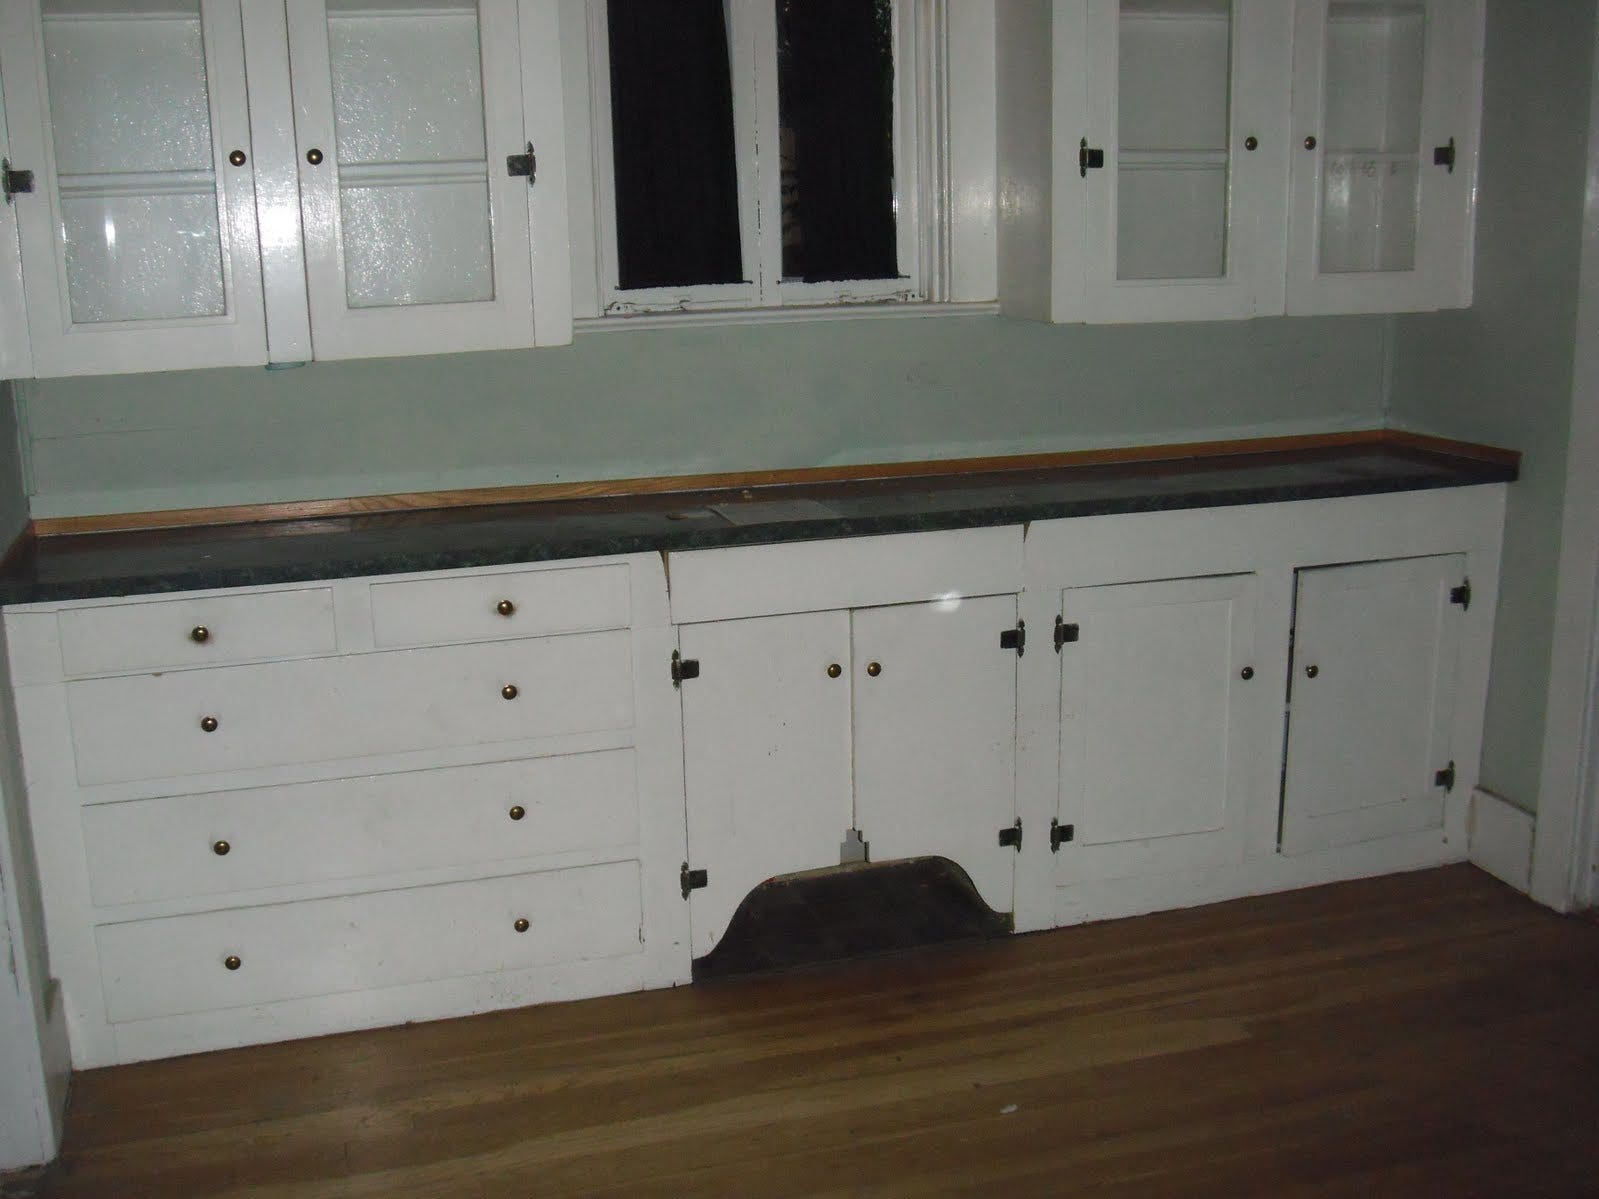 2010 picture of original kitchen cabinets, an area that is now a dining room.